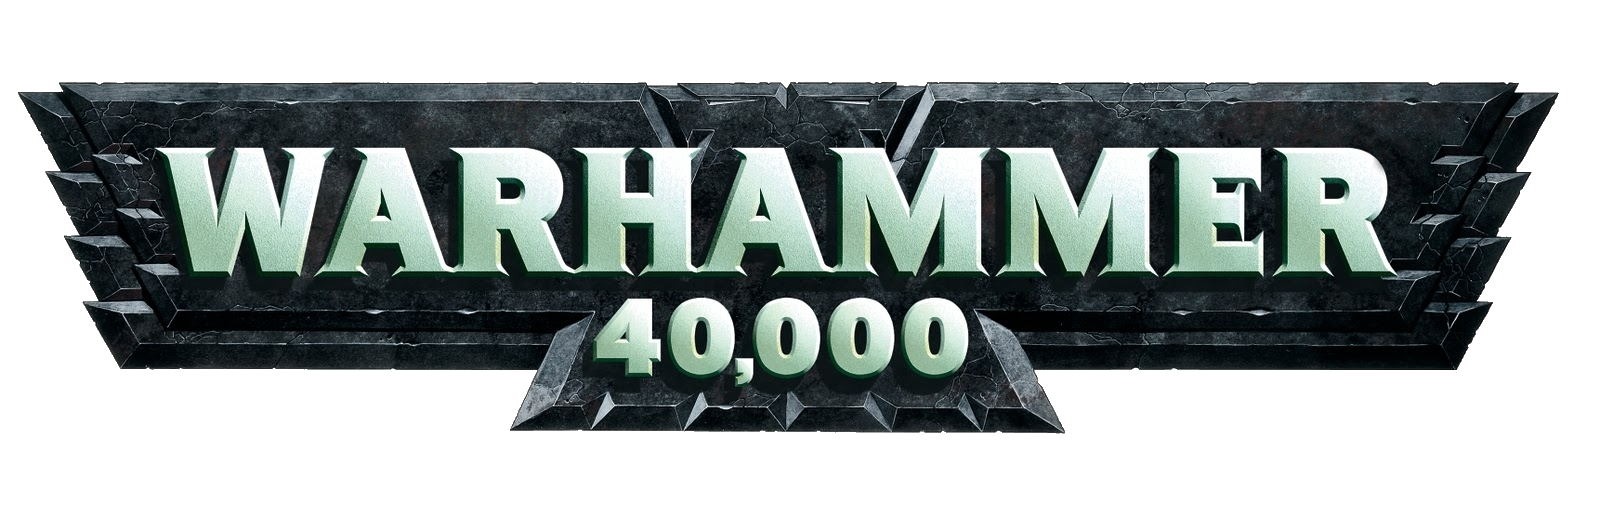 Image result for Warhammer 40K banner